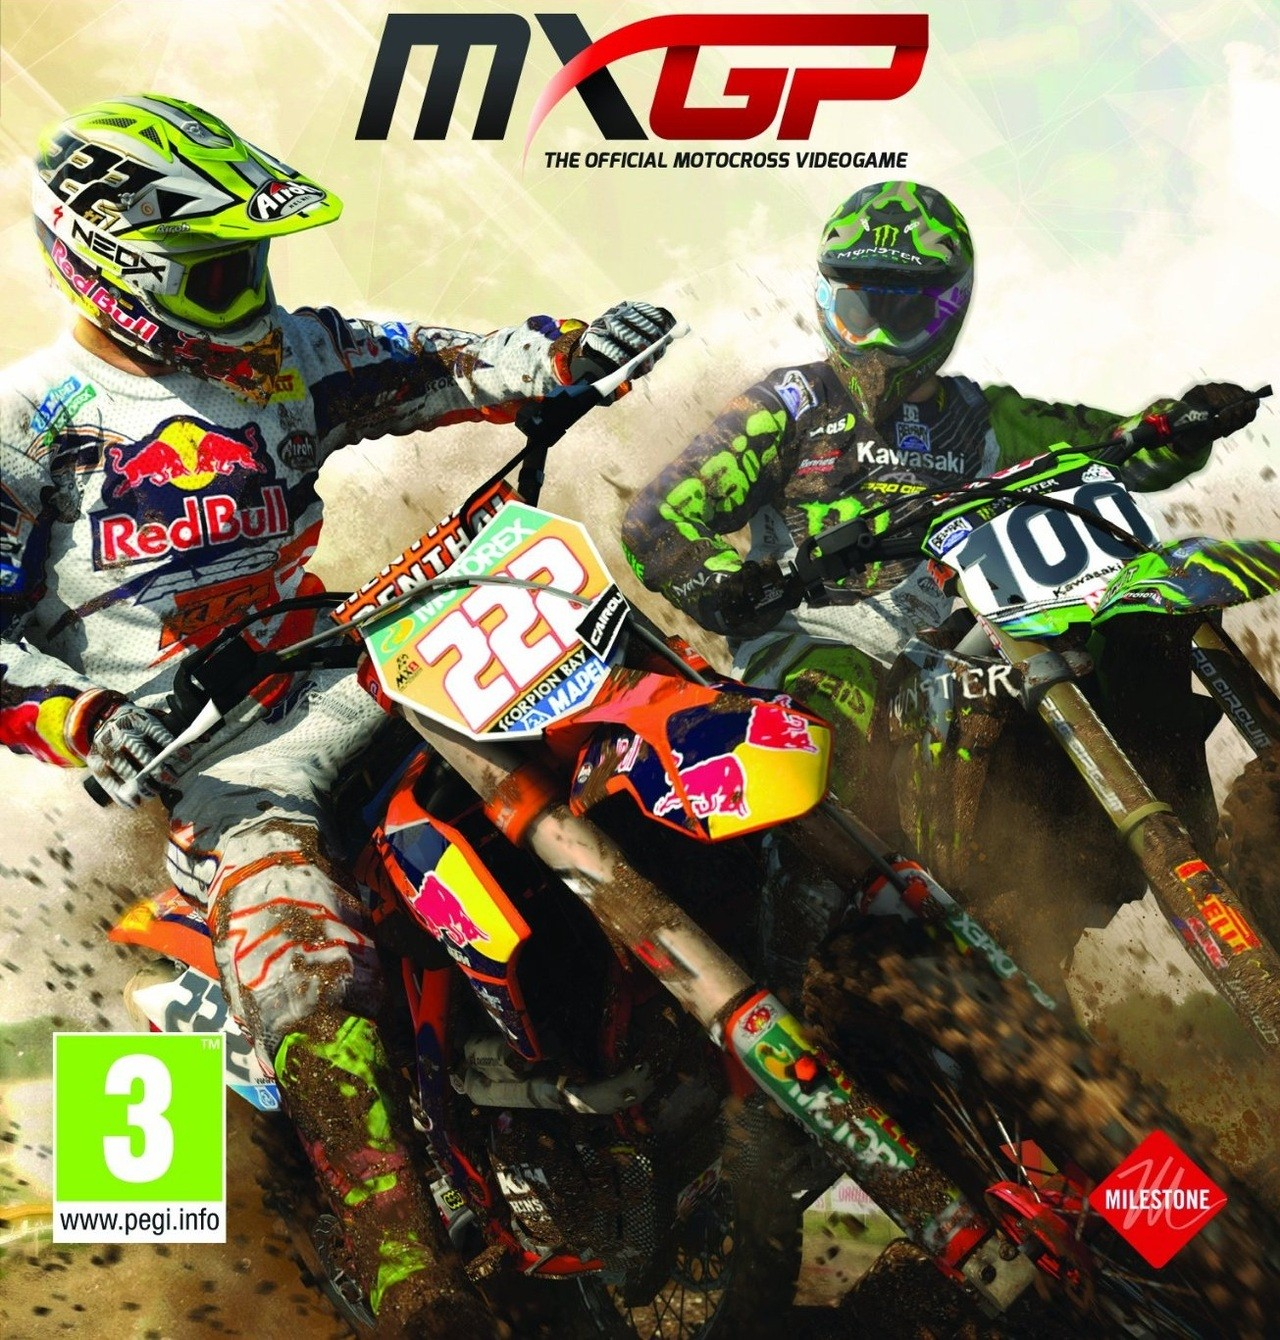 Mxgp The Official Motocross Videogame Sur Pc Jeuxvideo Com